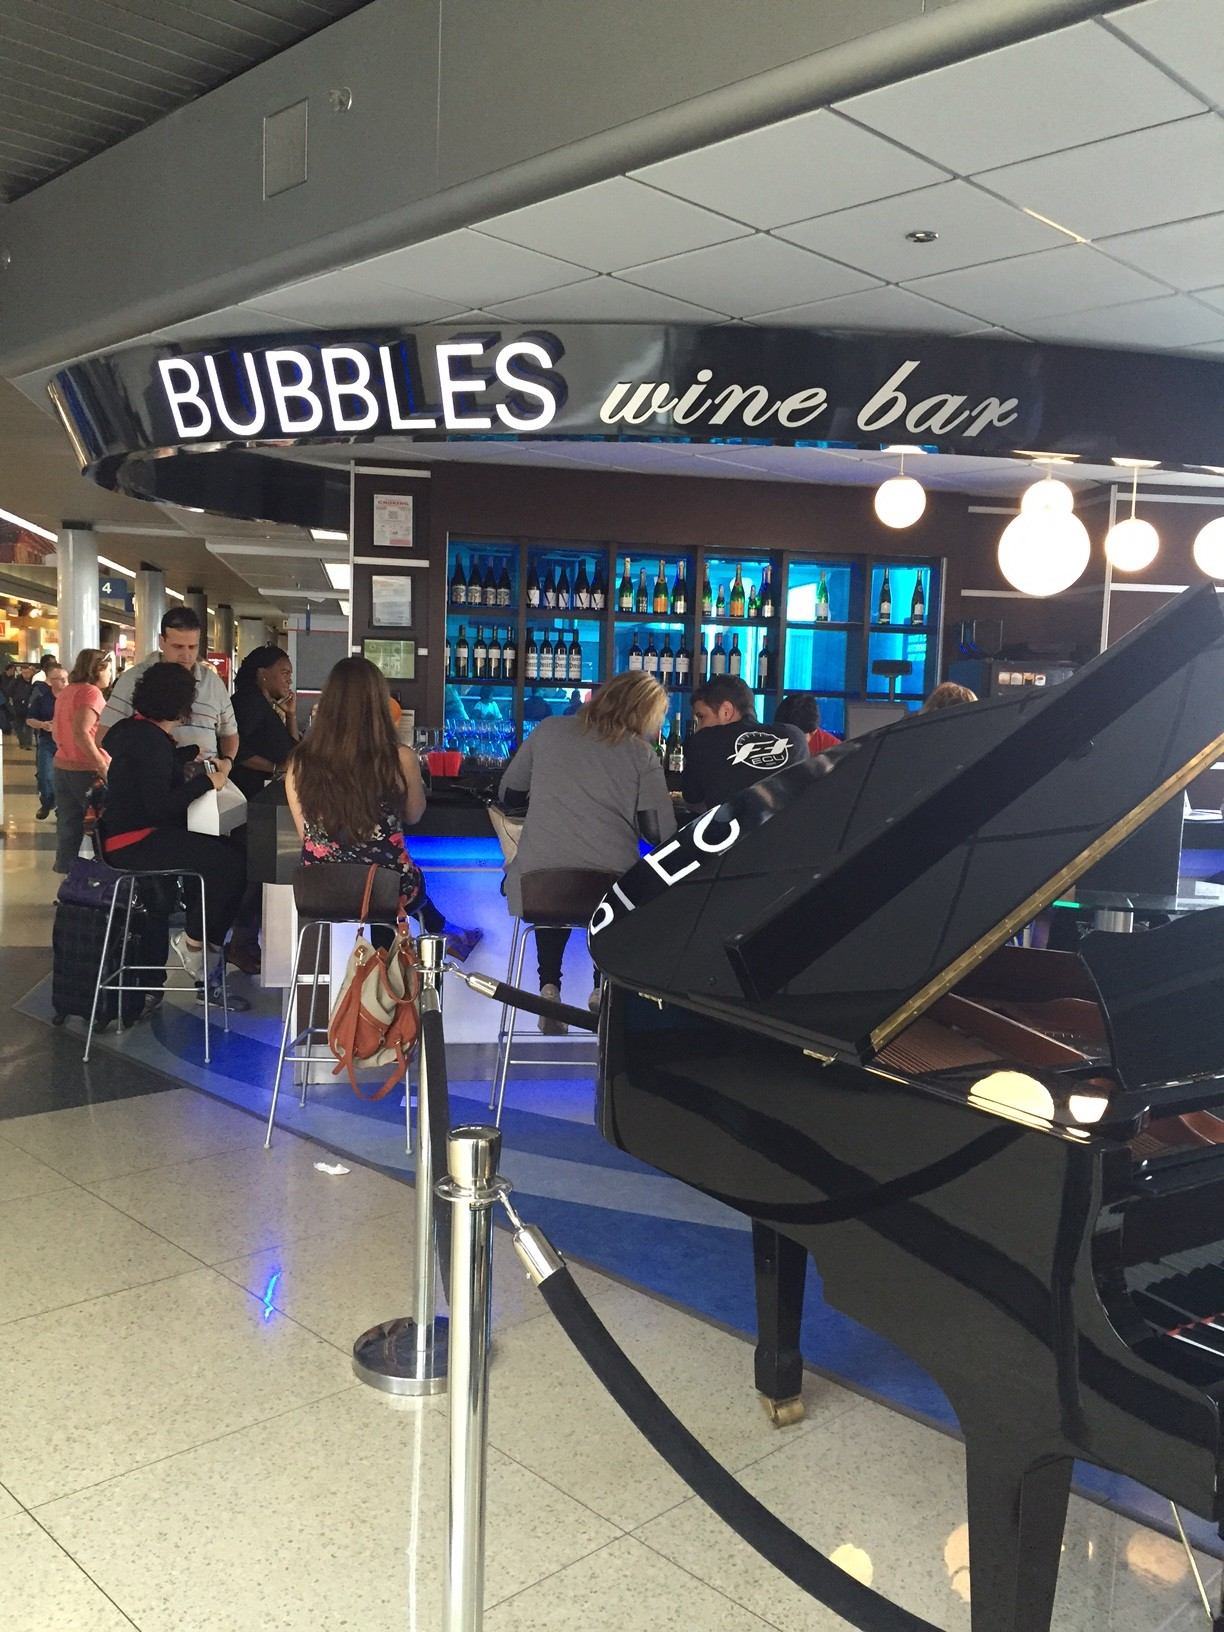 How To Enjoy Your Time At Chicago O'Hare Airport | Traveling Mom